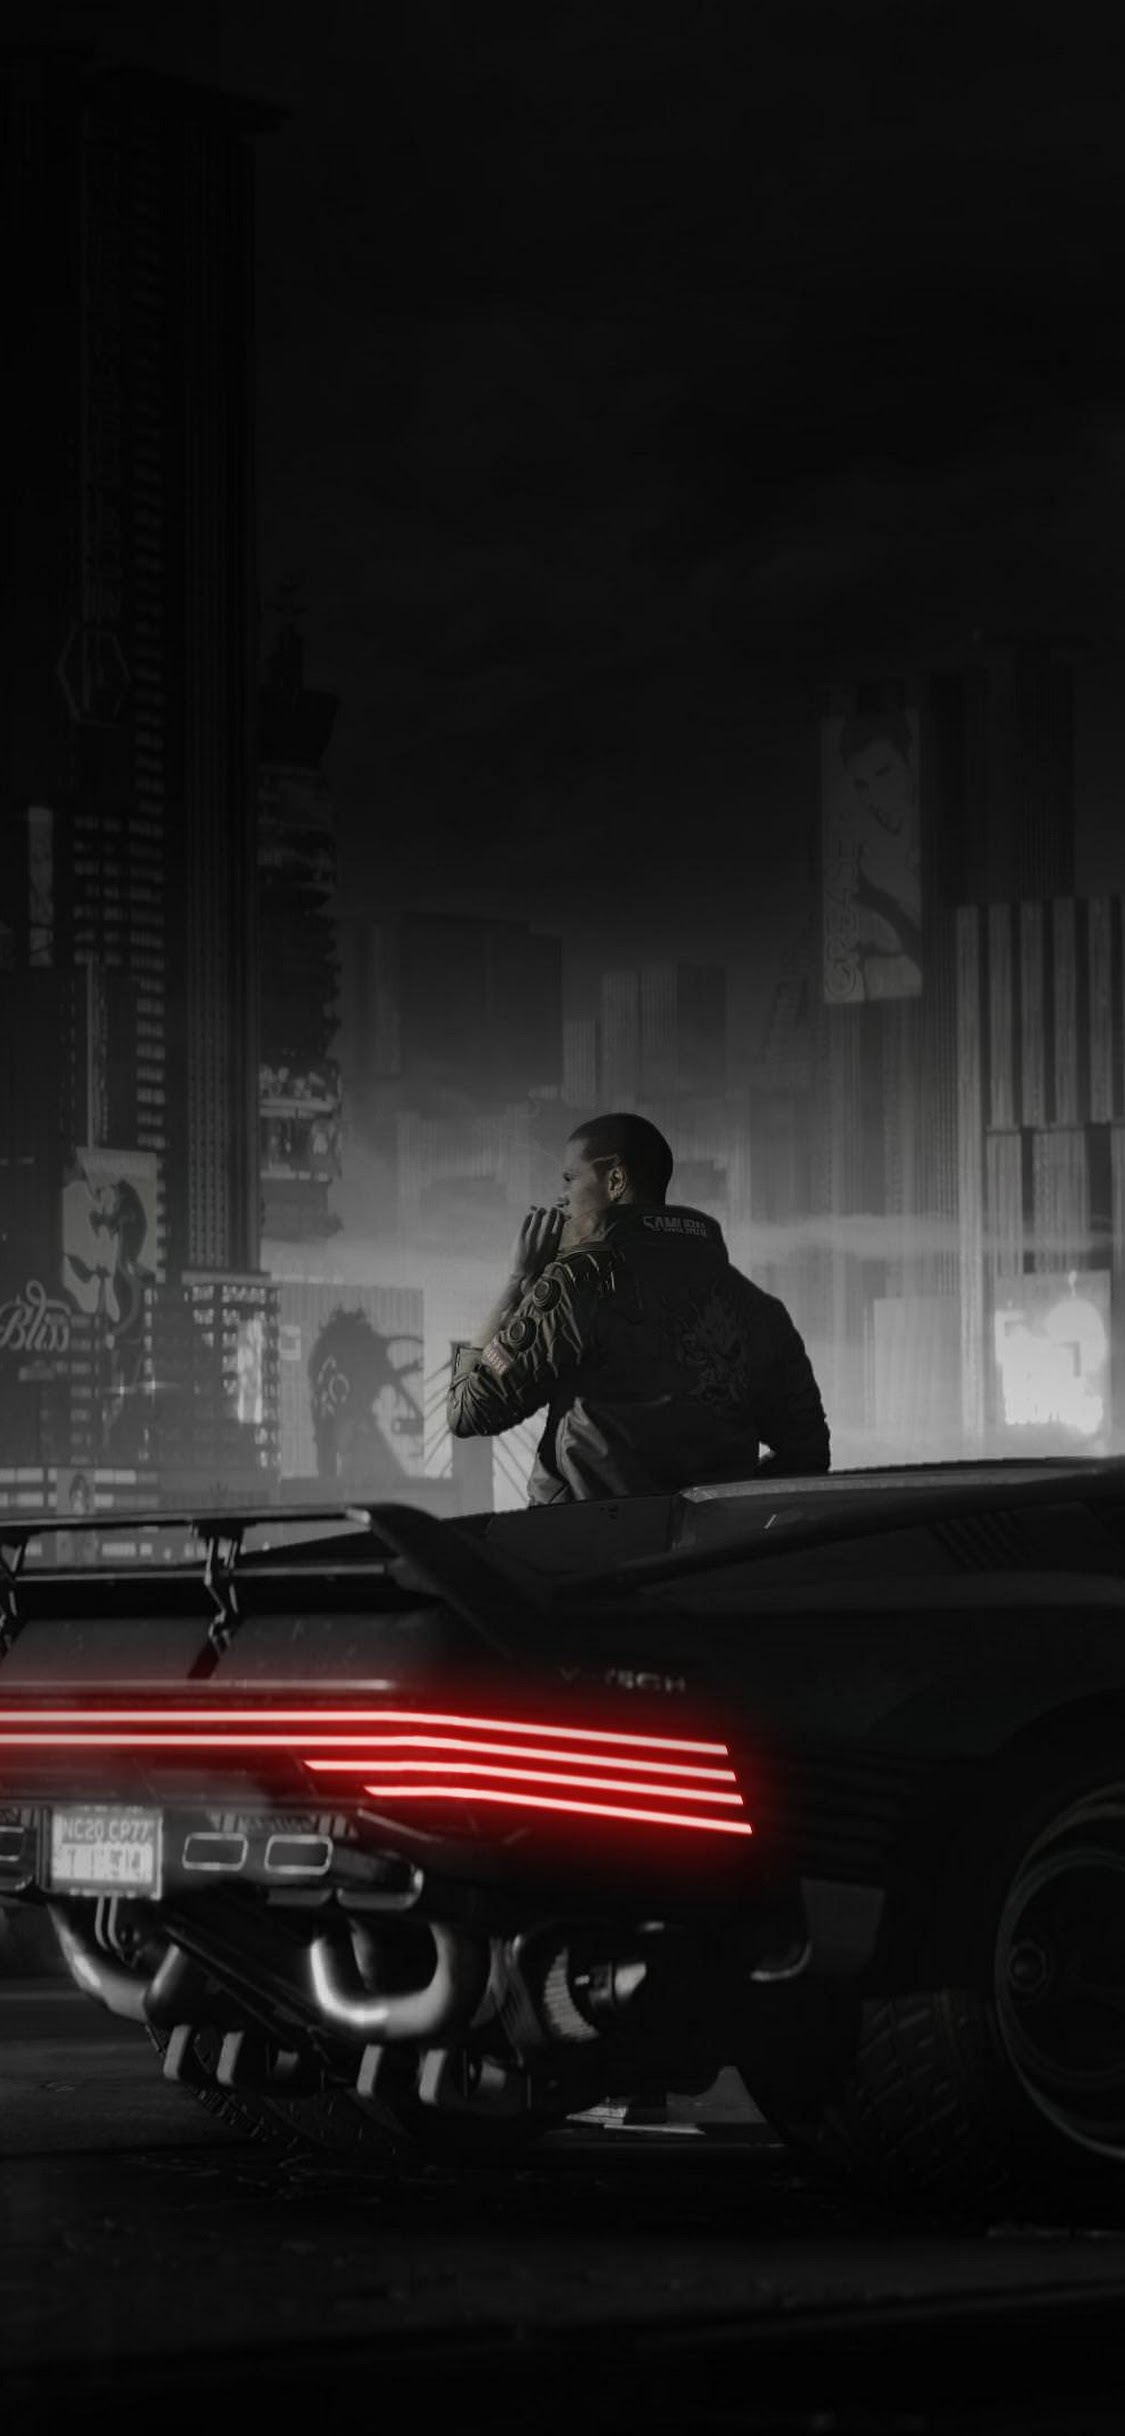 Download wallpaper images for osx, windows 10, android, iphone 7 and ipad. Cyberpunk 2077 V Car Quadra V Tech 4k Wallpaper 92